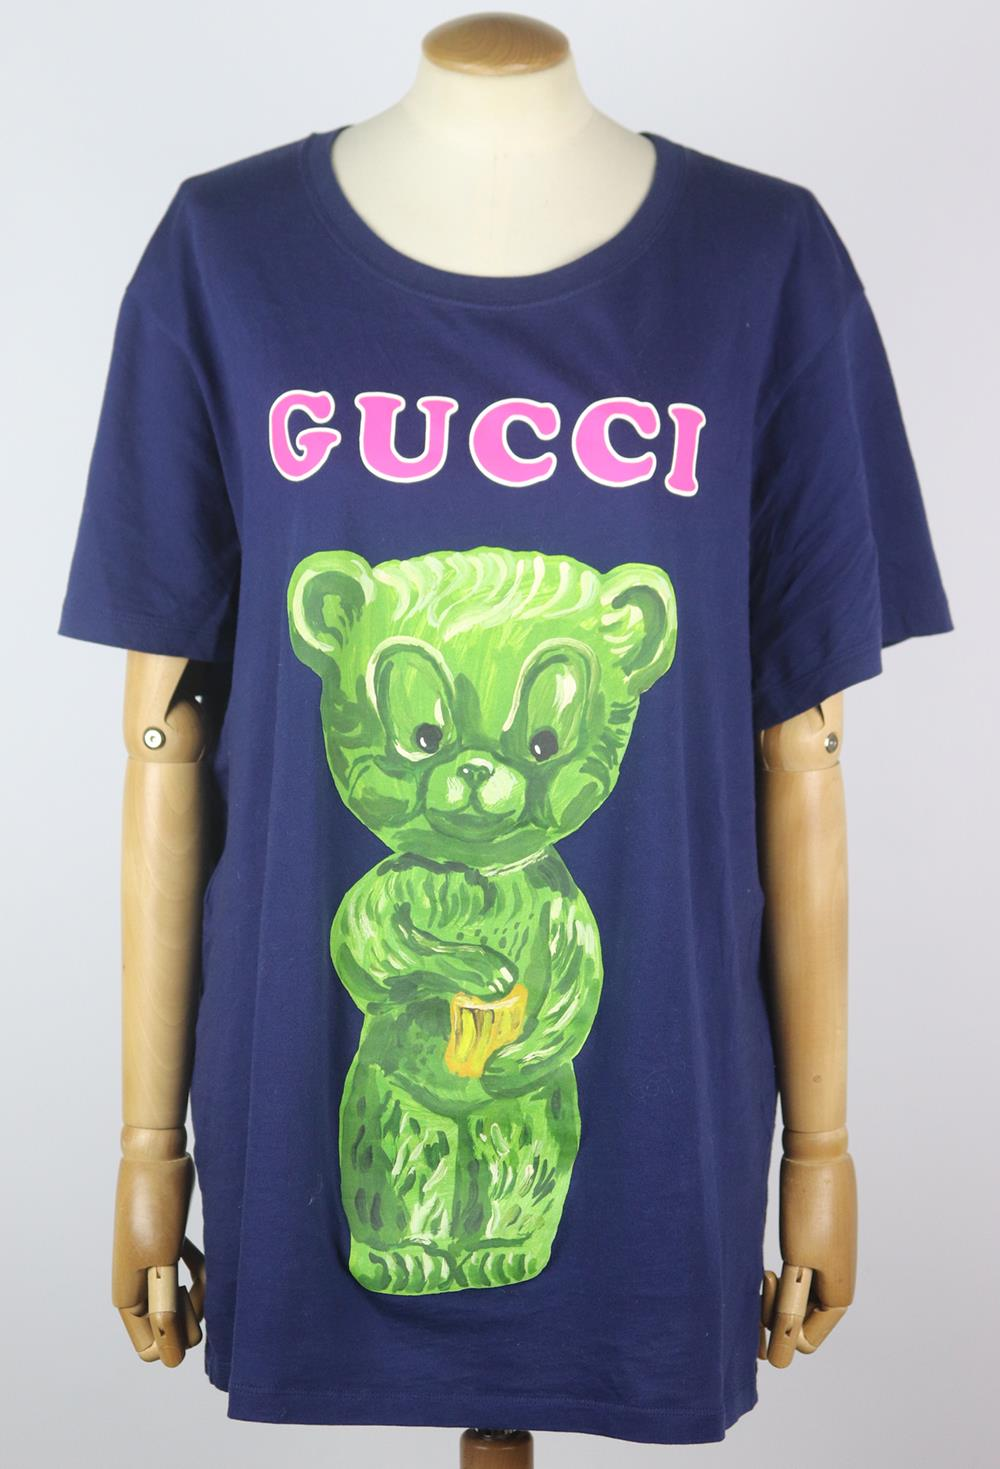 GUCCI PRINTED COTTON JERSEY T-SHIRT MEDIUM